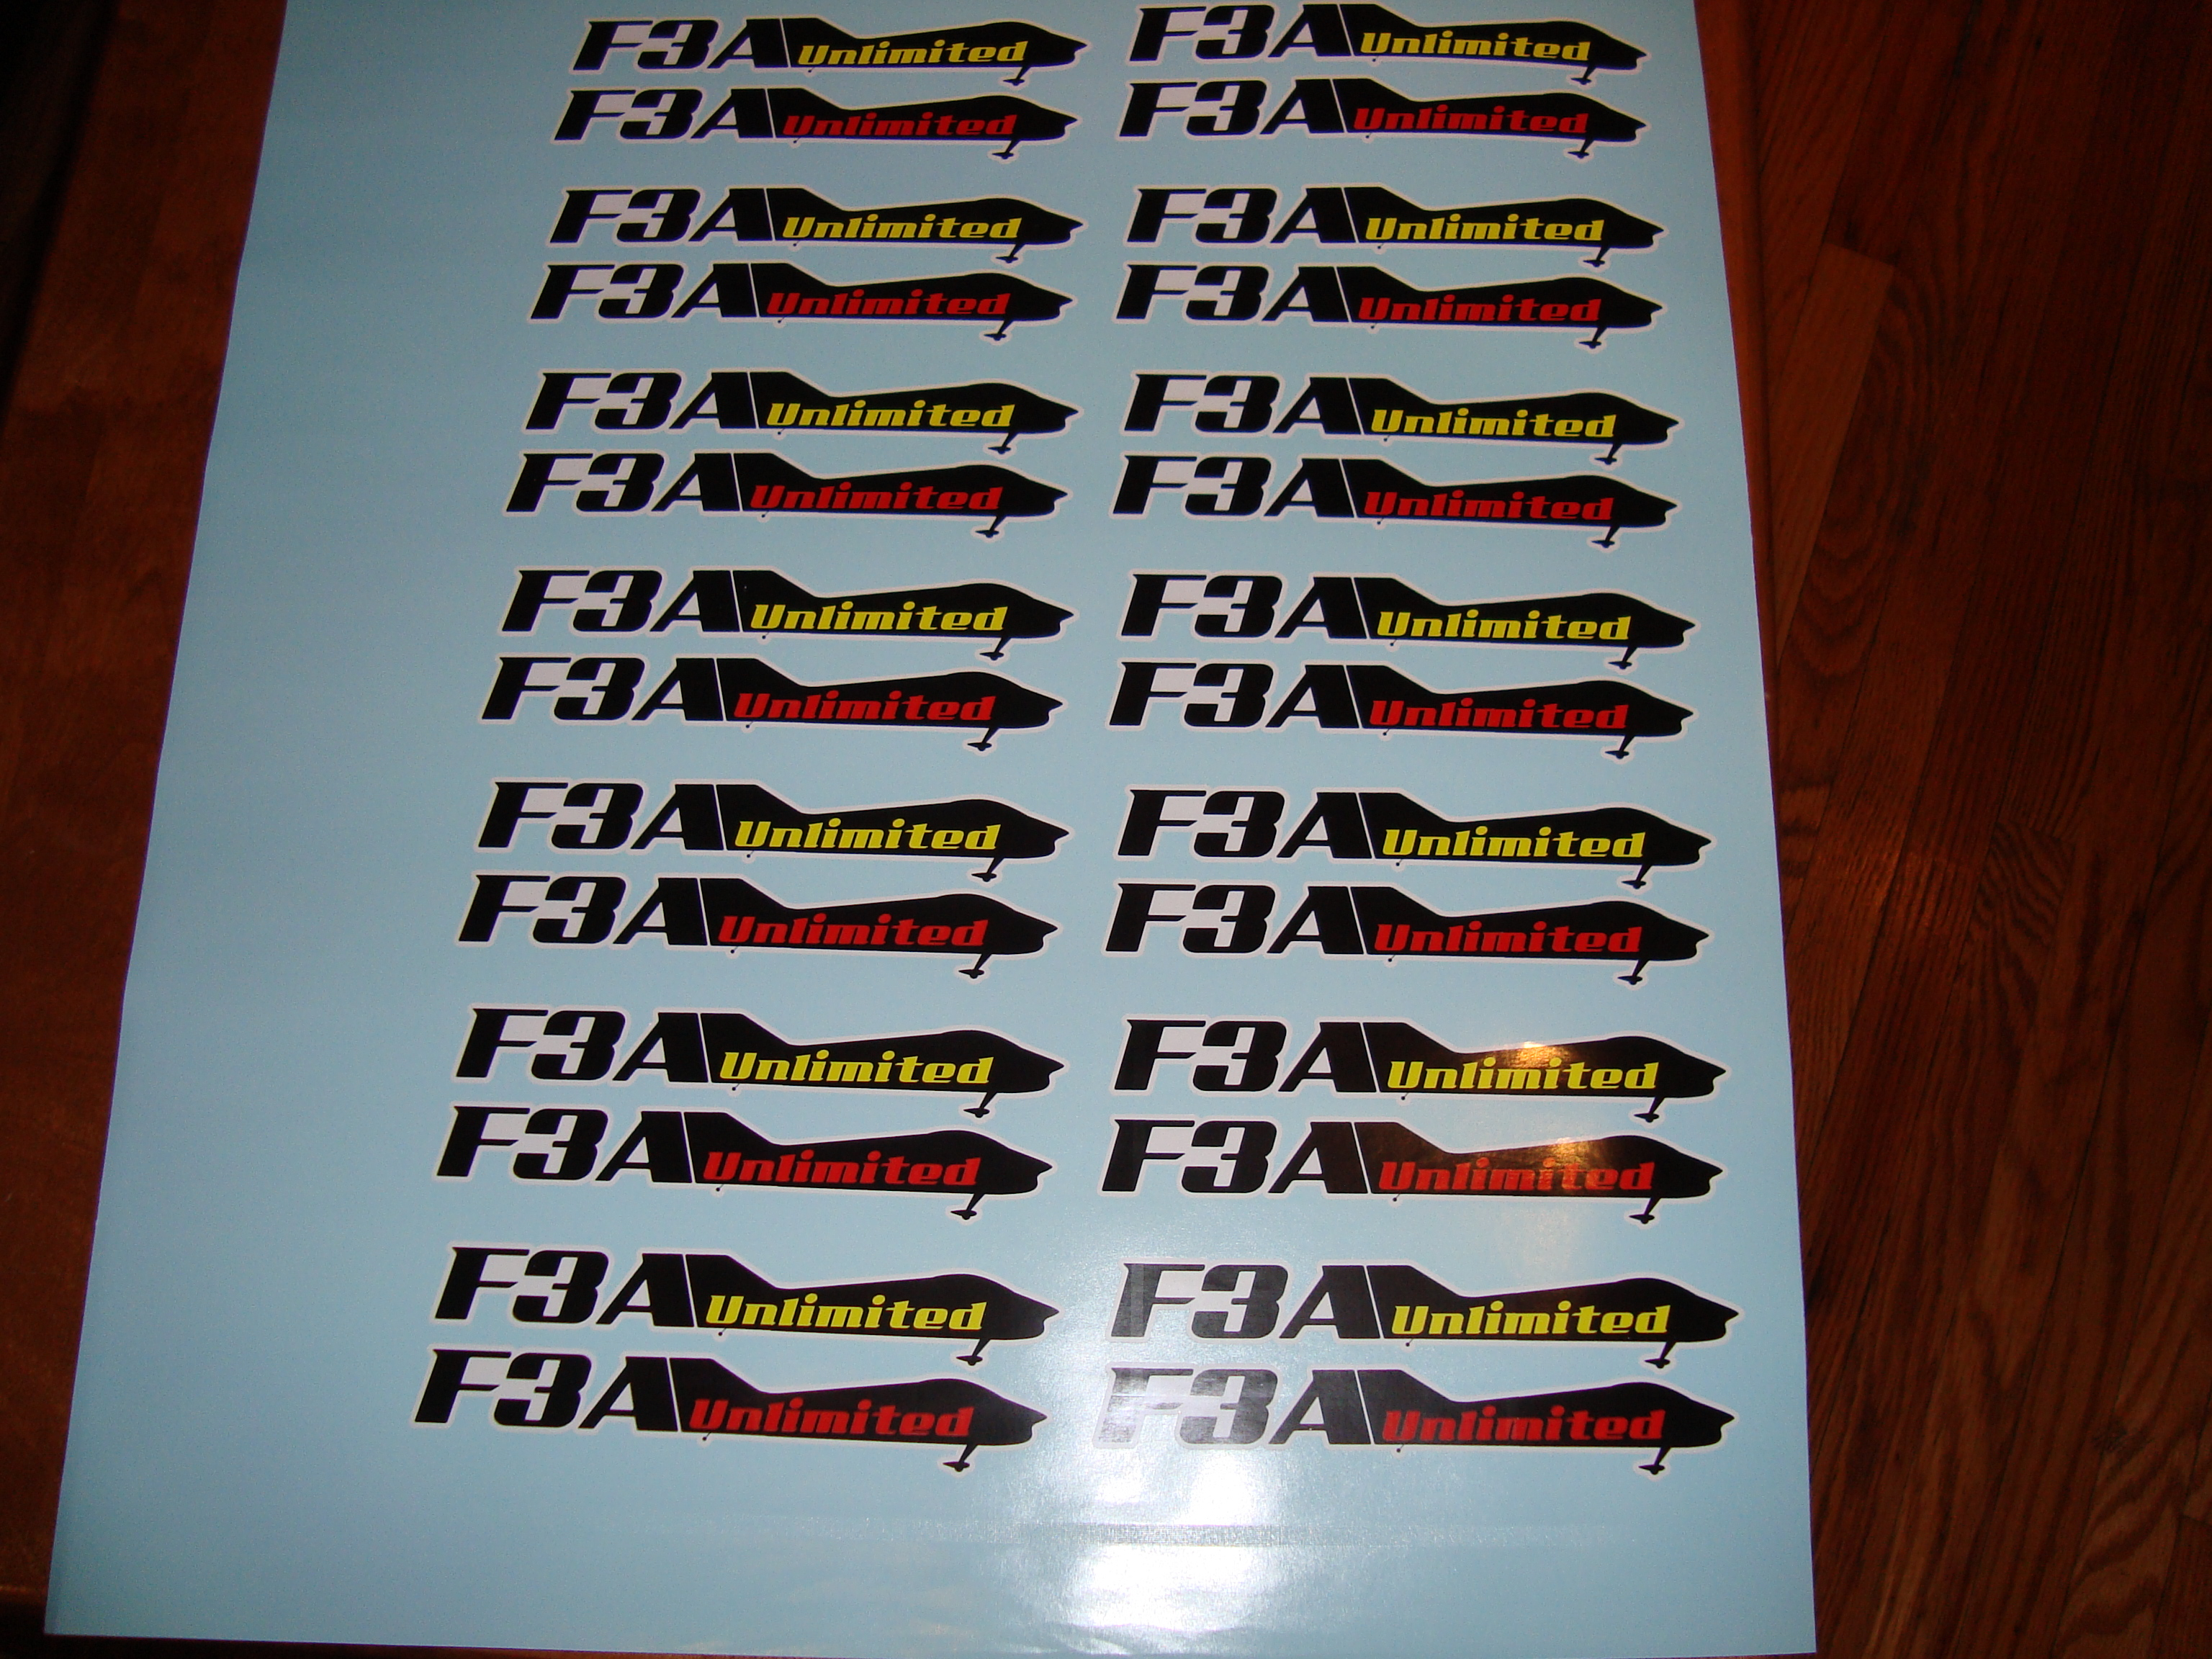 F3A Unlimited